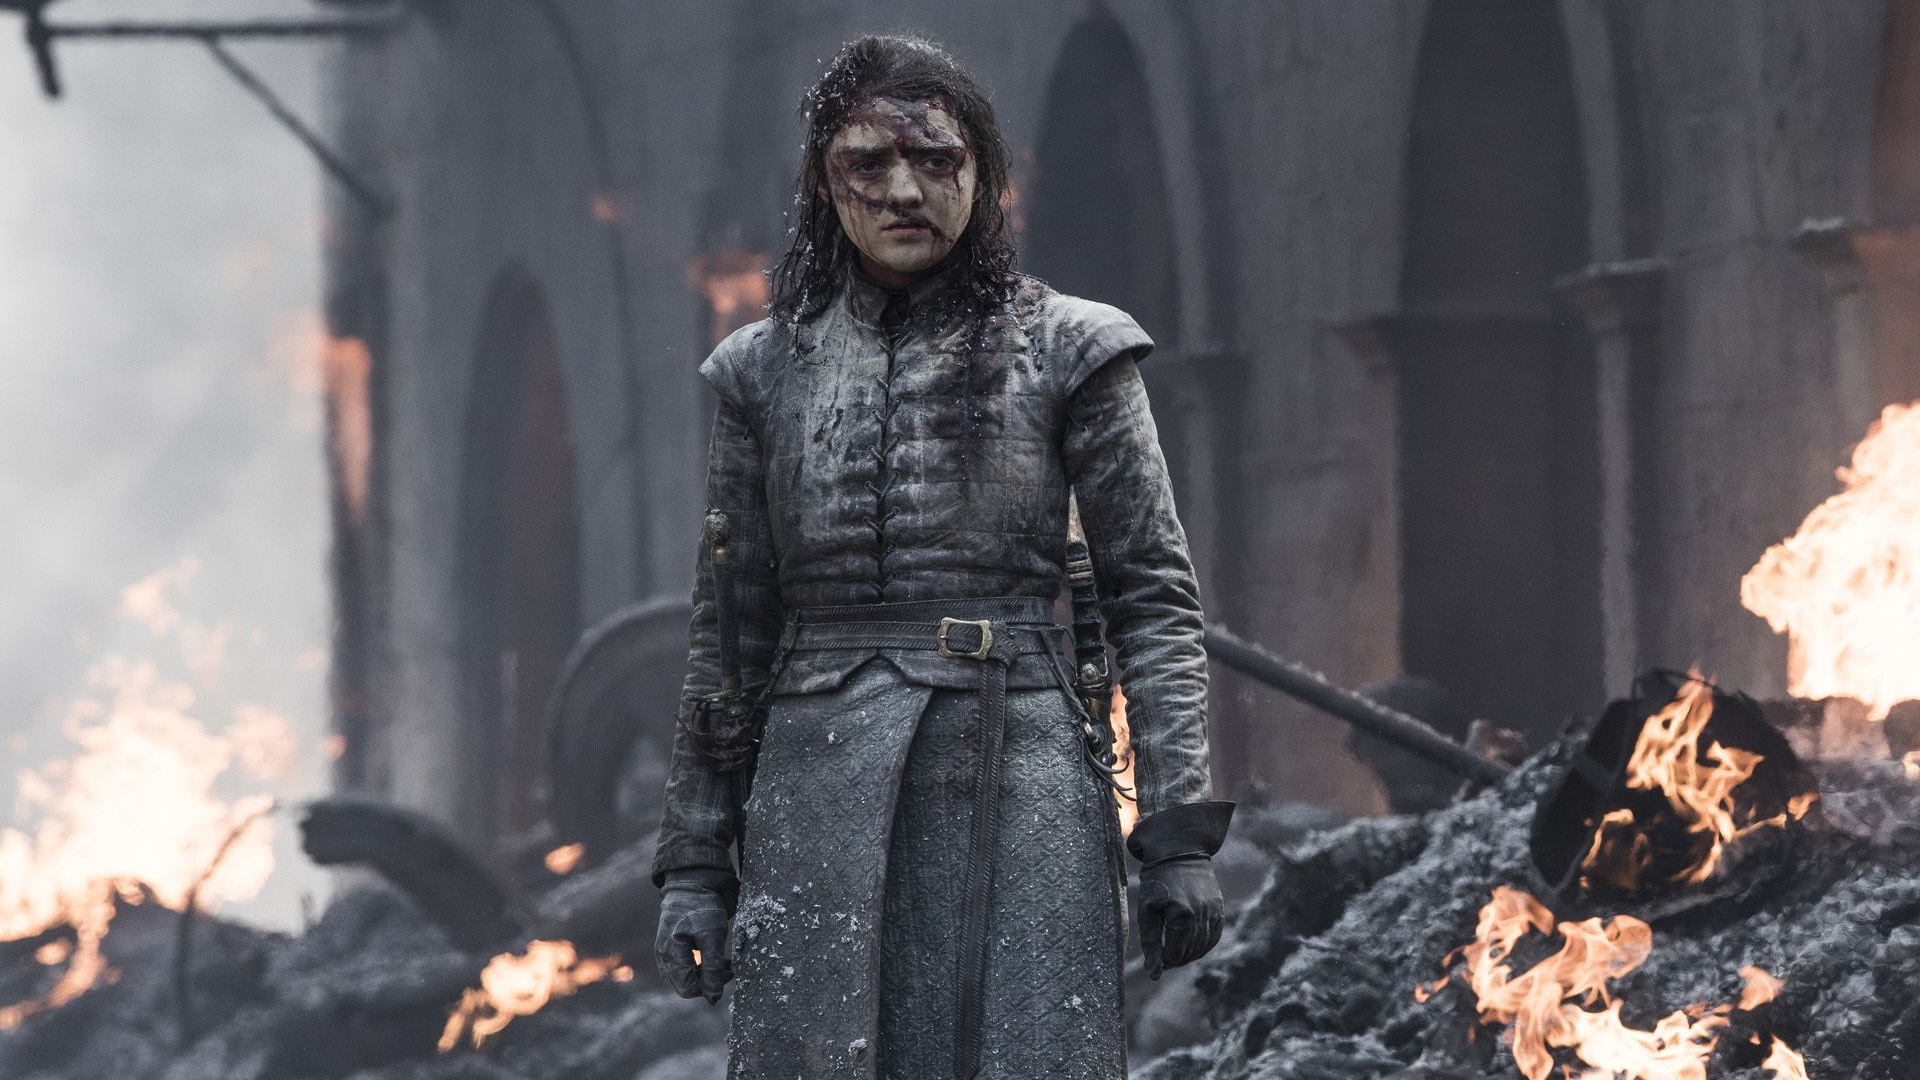 game-of-thrones-fans-start-a-petition-to-have-hbo-remake-season-8-with-new-writers-social.jpg